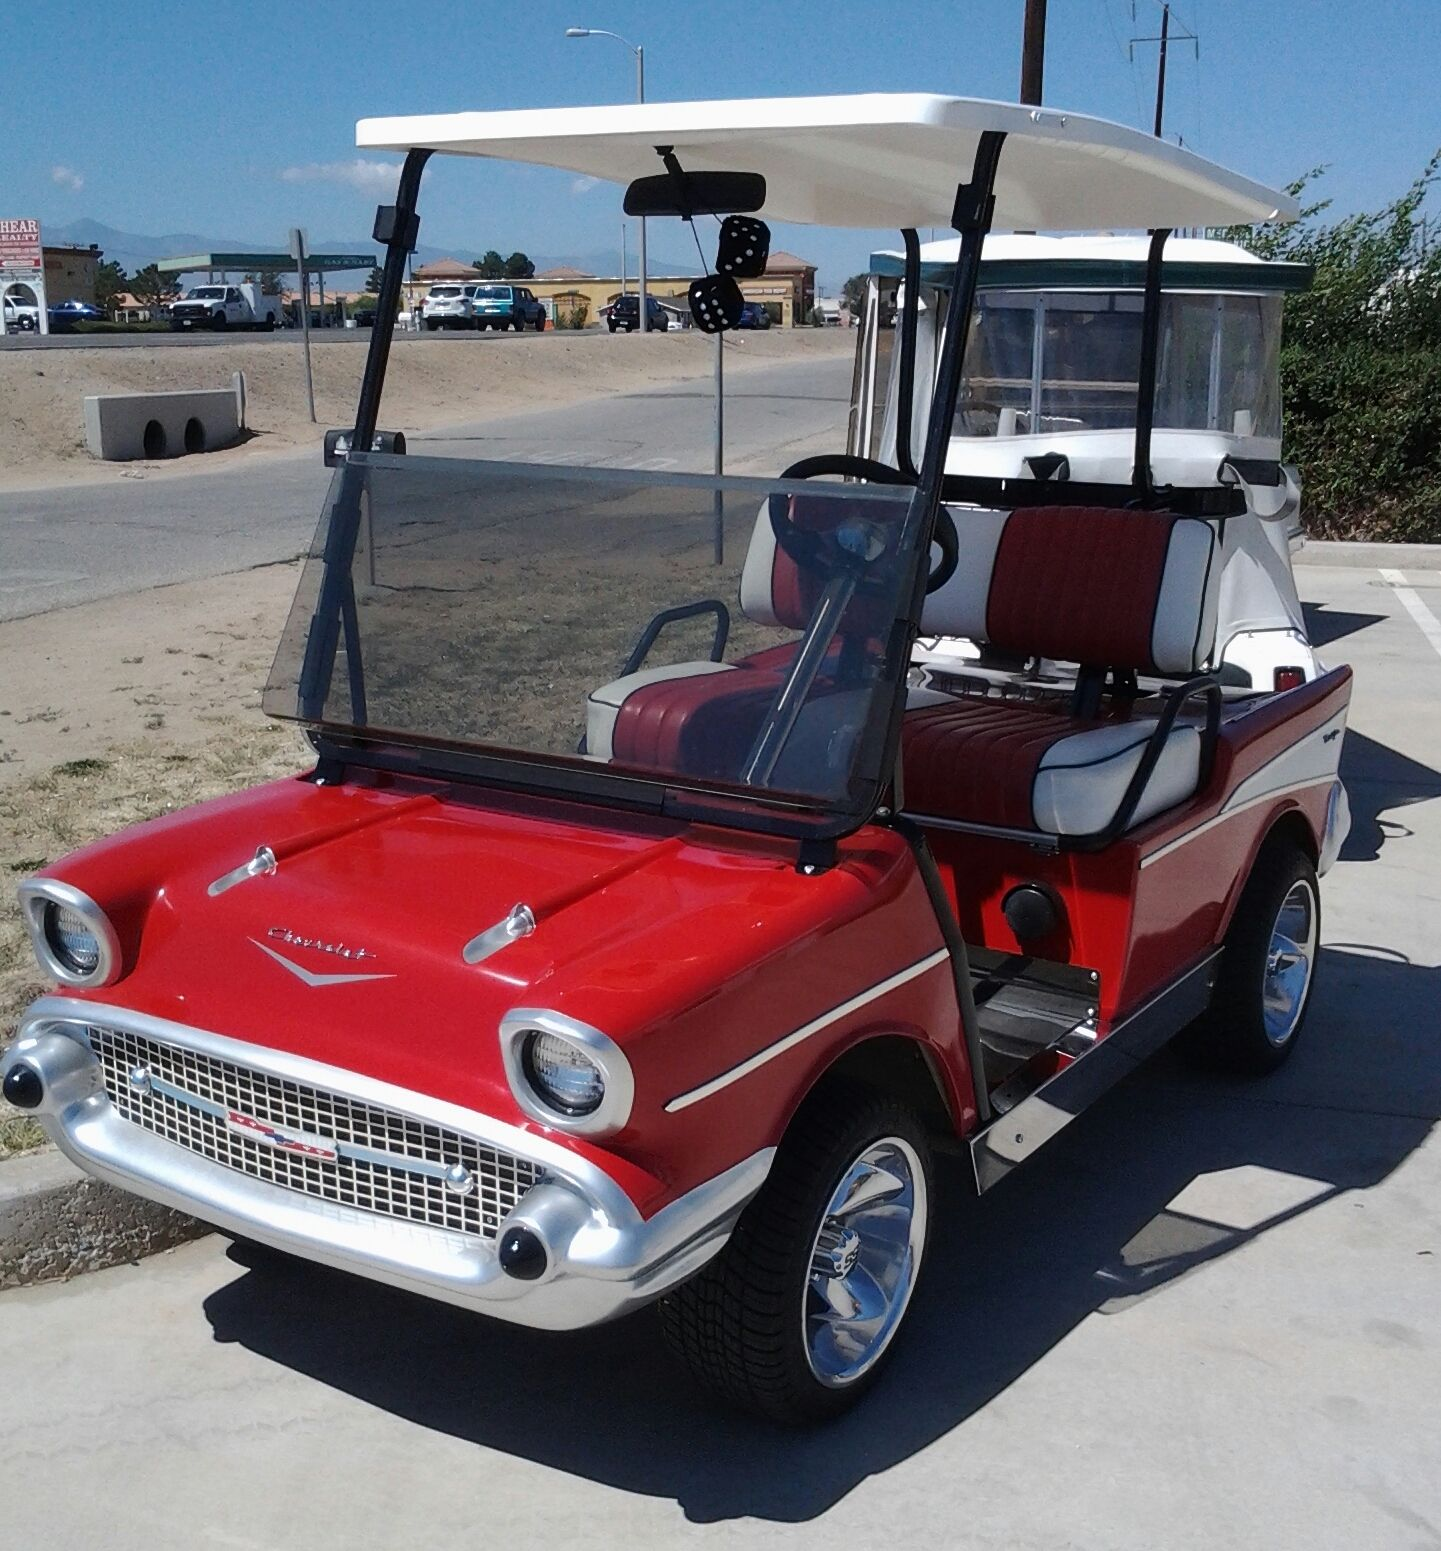 57 Chevy Golf Cart Bulit By Lifestyle Custom Carts In Victorville Ca Golf Carts Chevy Golf